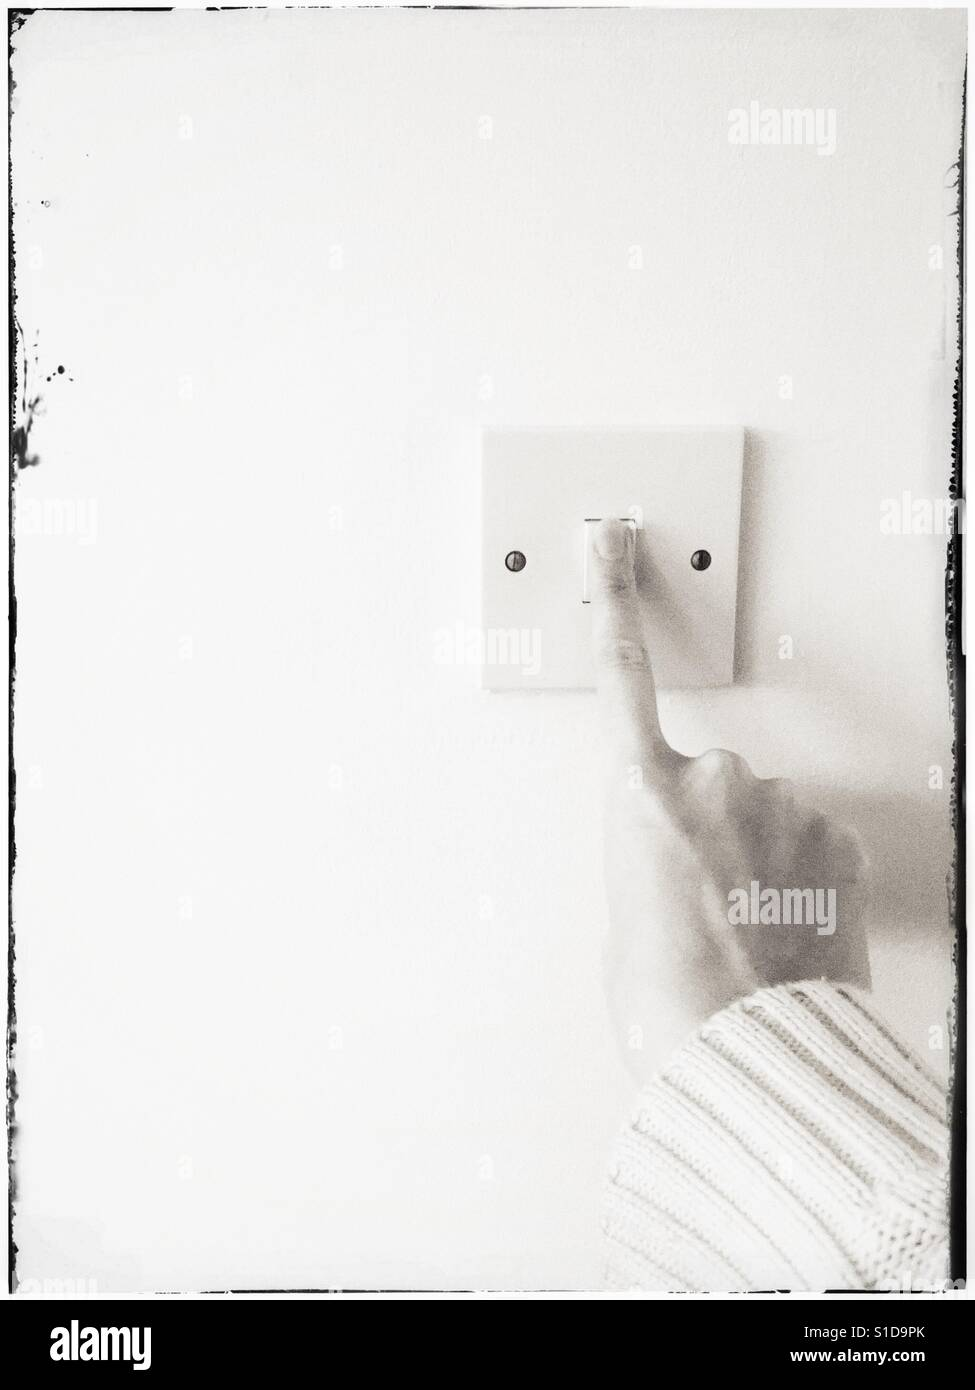 Index finger on right hand turning on or off an electric light switch. Muted tones with grain and retro filter applied. - Stock Image